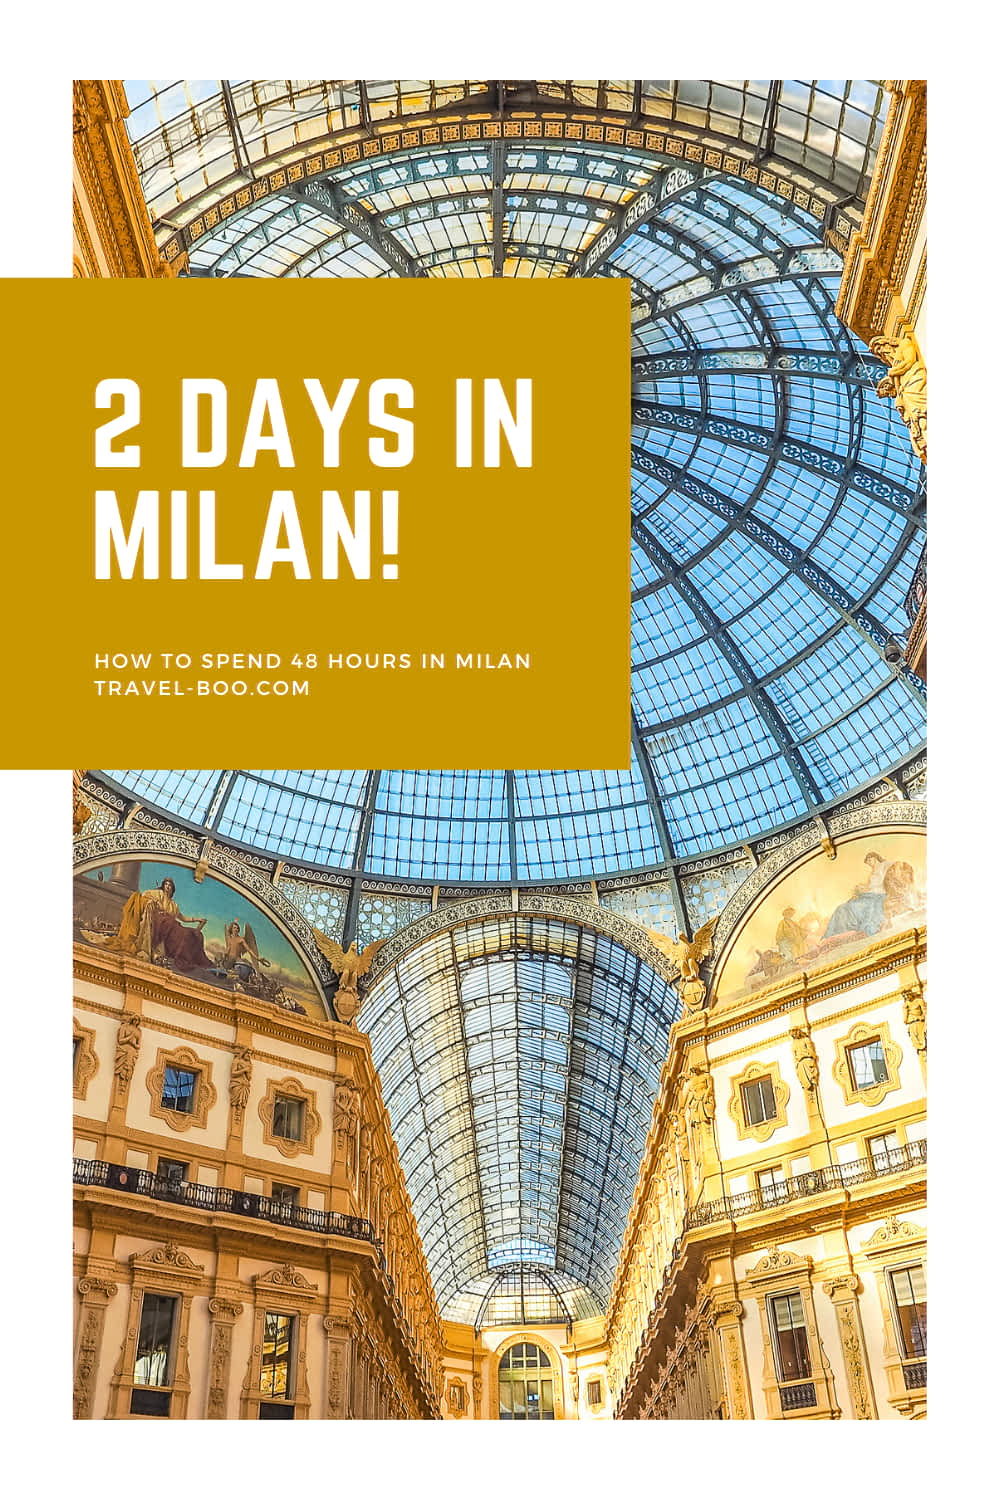 The Perfect 2 Days in Milan Itinerary! Milan Travel, Milan Travel Guide, Milan Italy, Italy Travel Guide, Italy Travel Tips. #milantravel #milan #italytravel